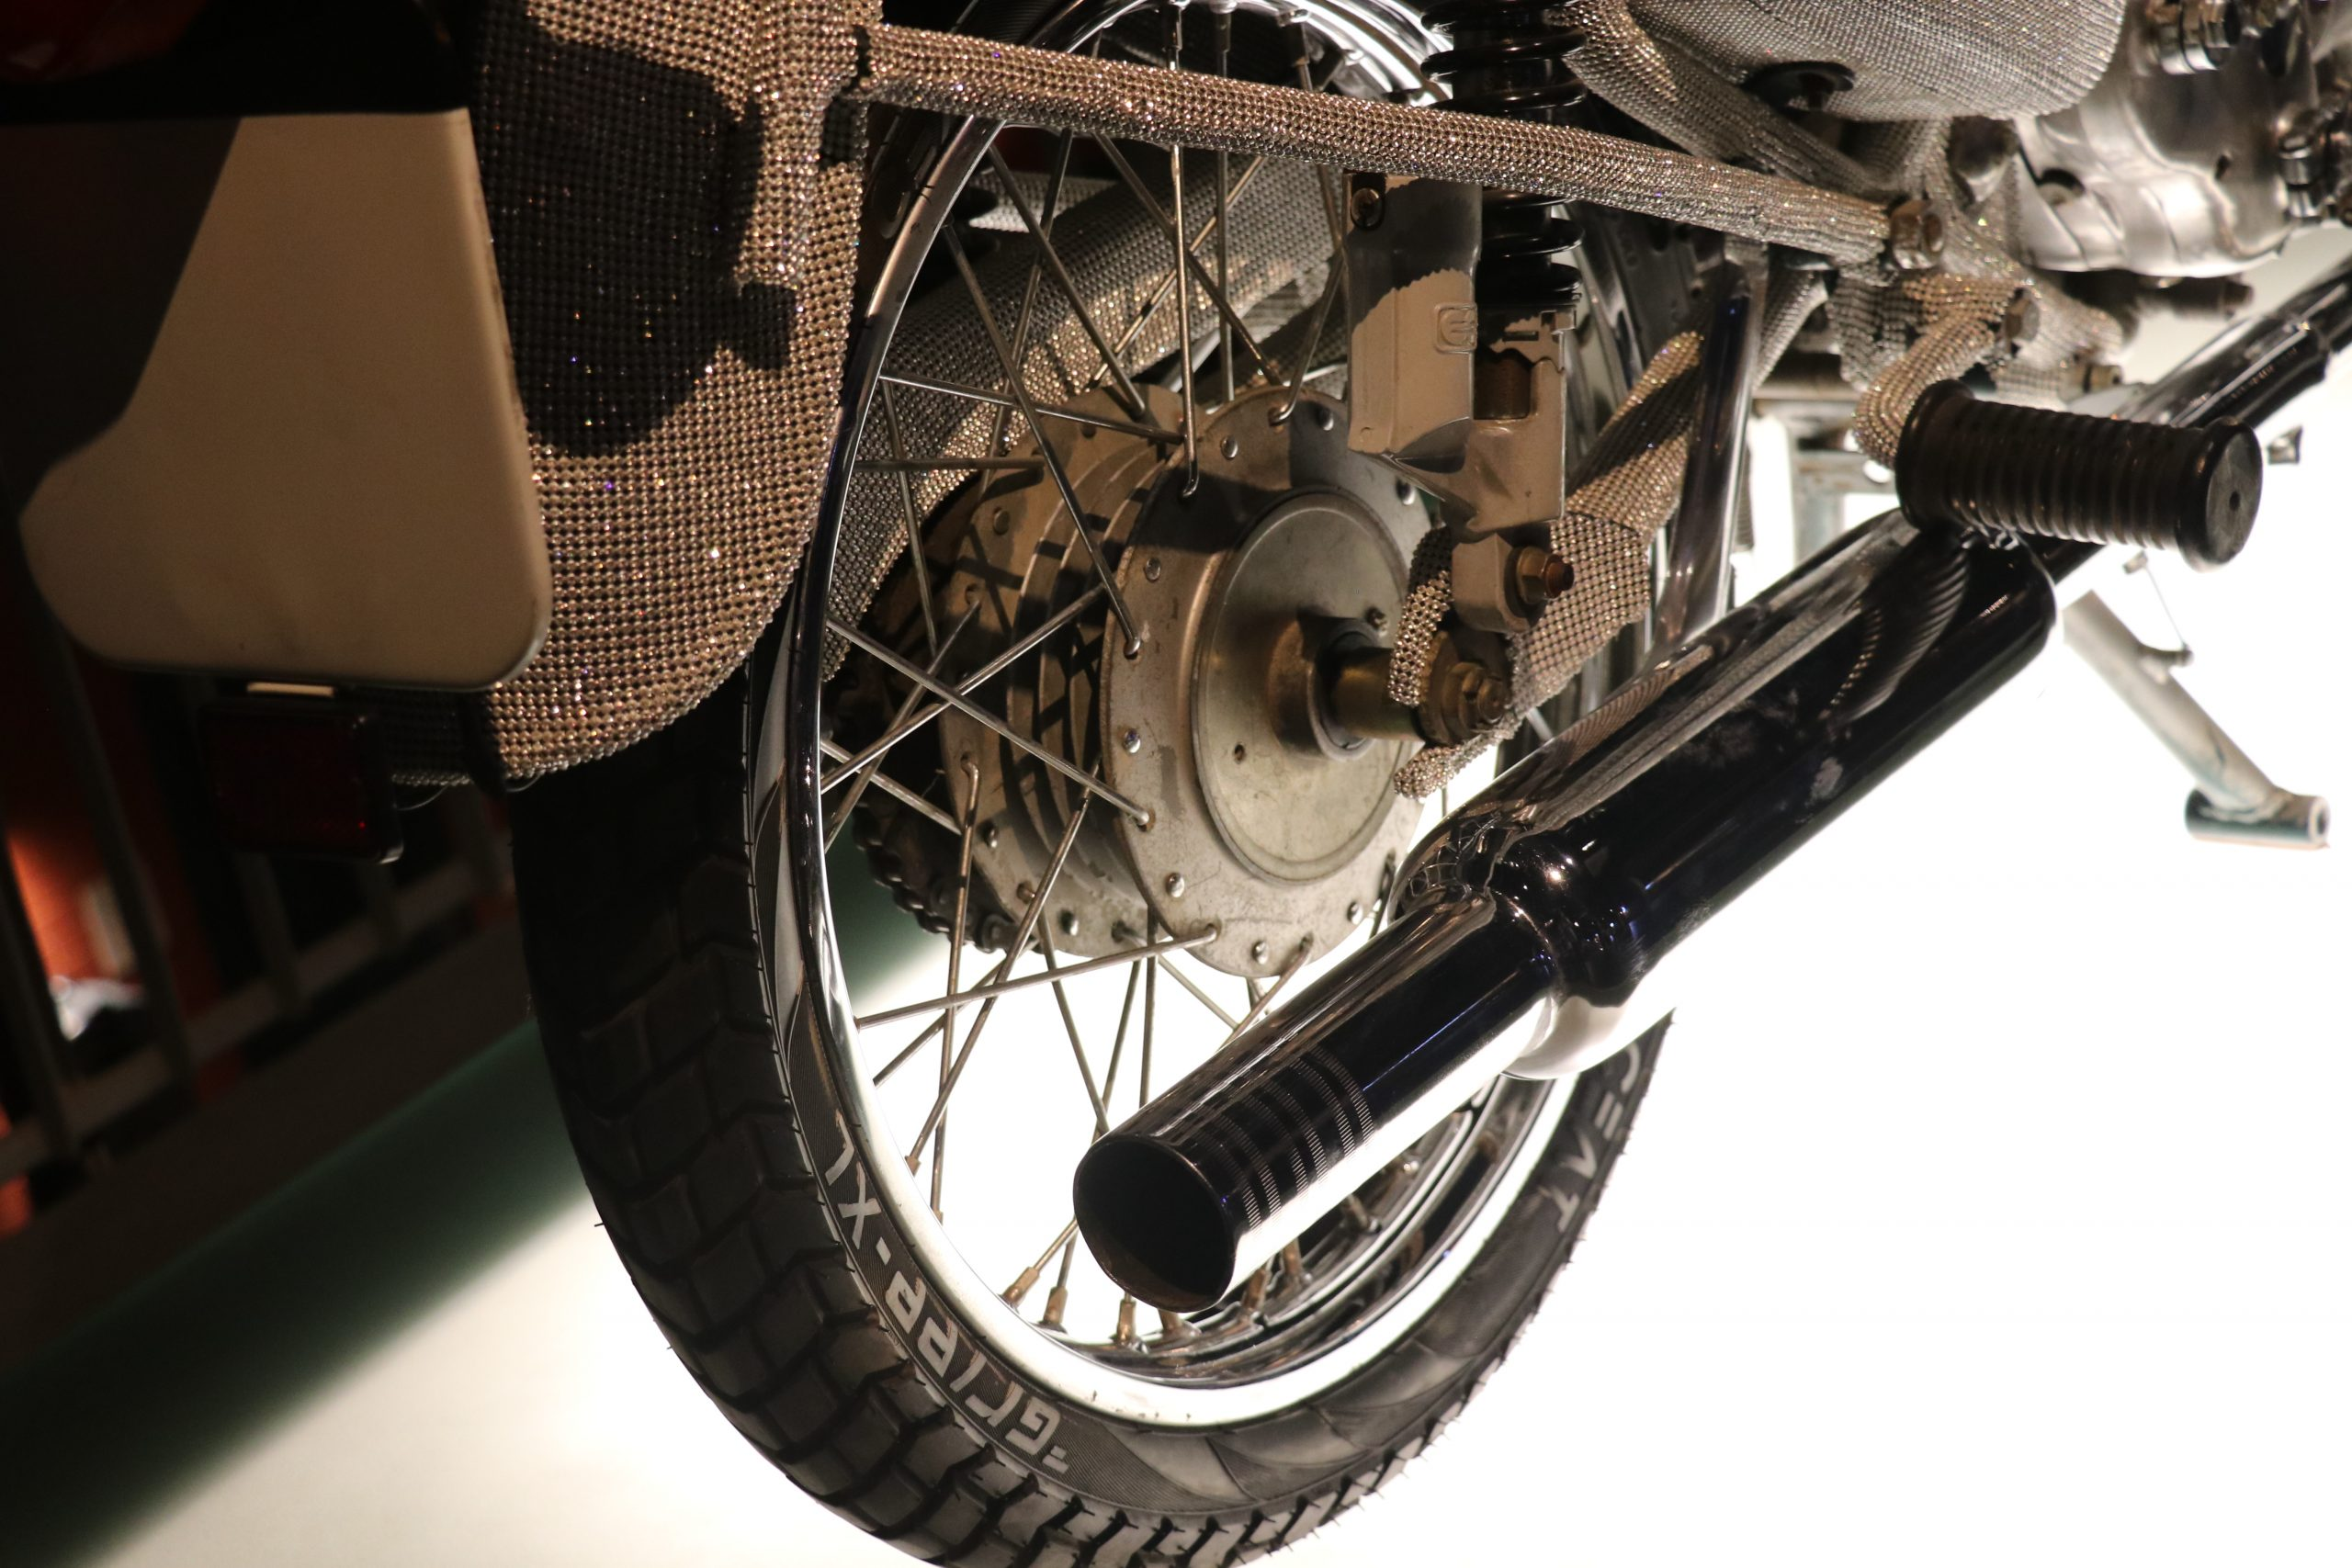 Tyre and silencer of a bike